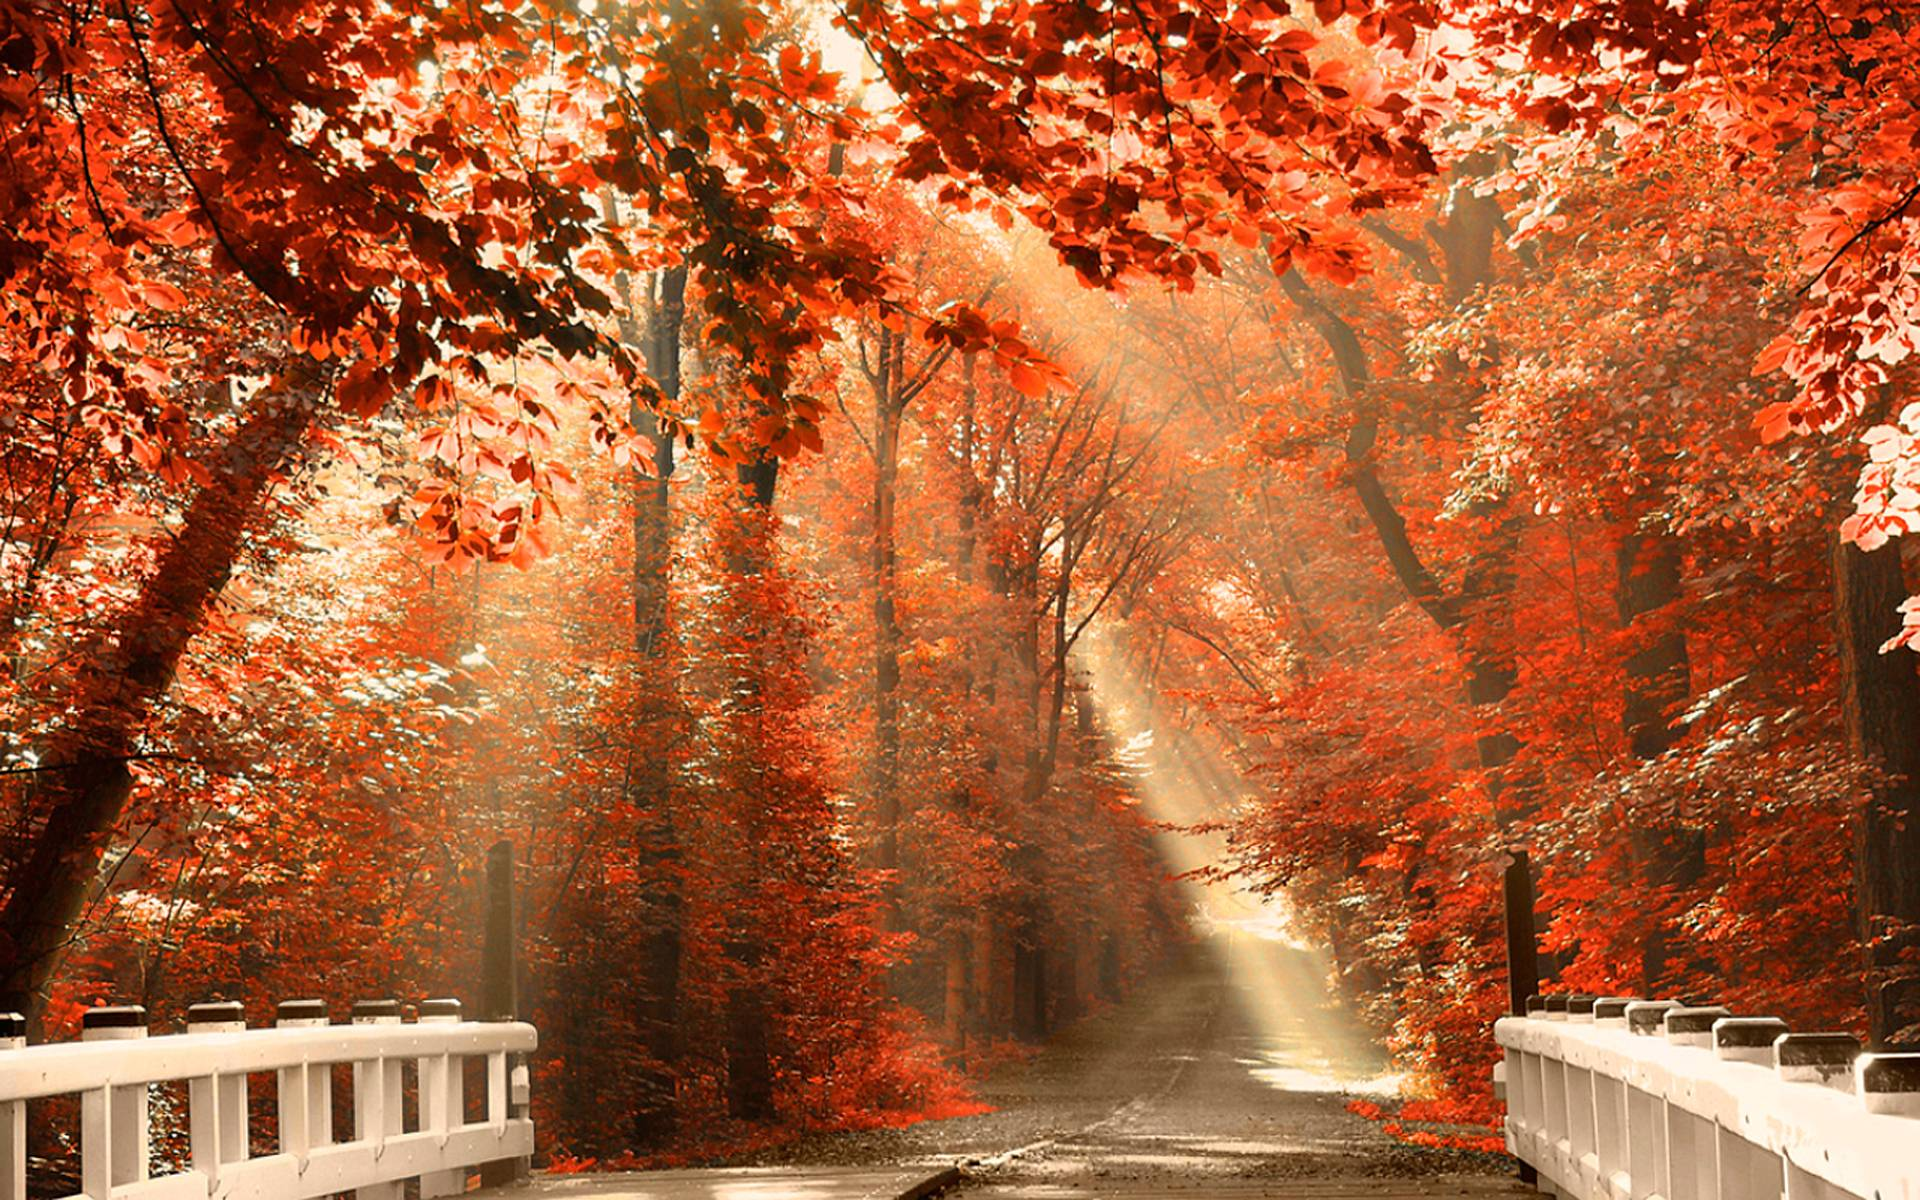 Autumn Nature Wallpaper Desktop Pictures 5 HD Wallpapers